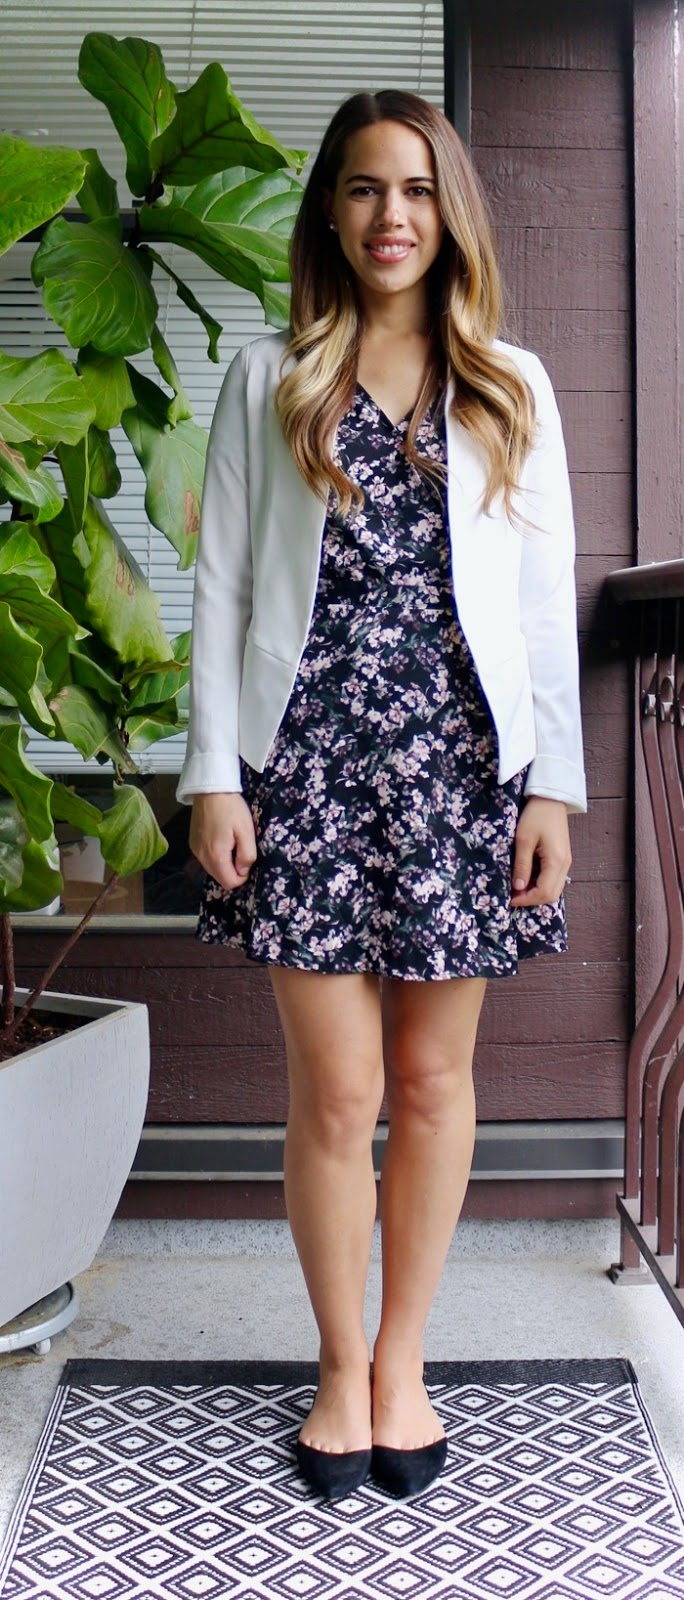 Jules in Flats - Floral Wrap Dress with White Blazer -